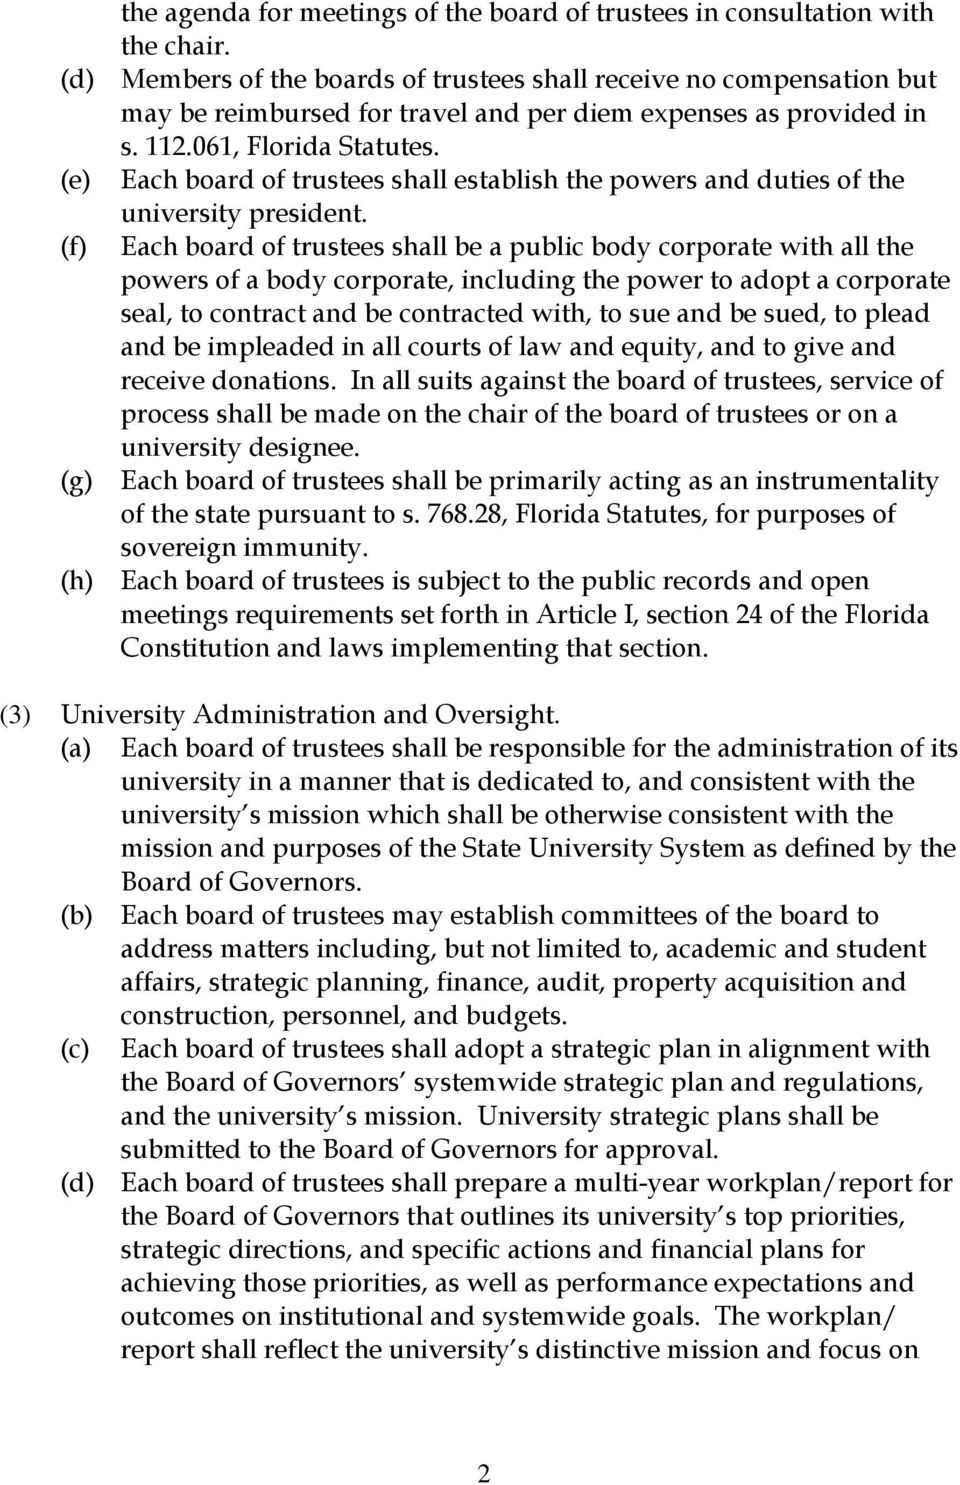 (e) Each board of trustees shall establish the powers and duties of the university president.